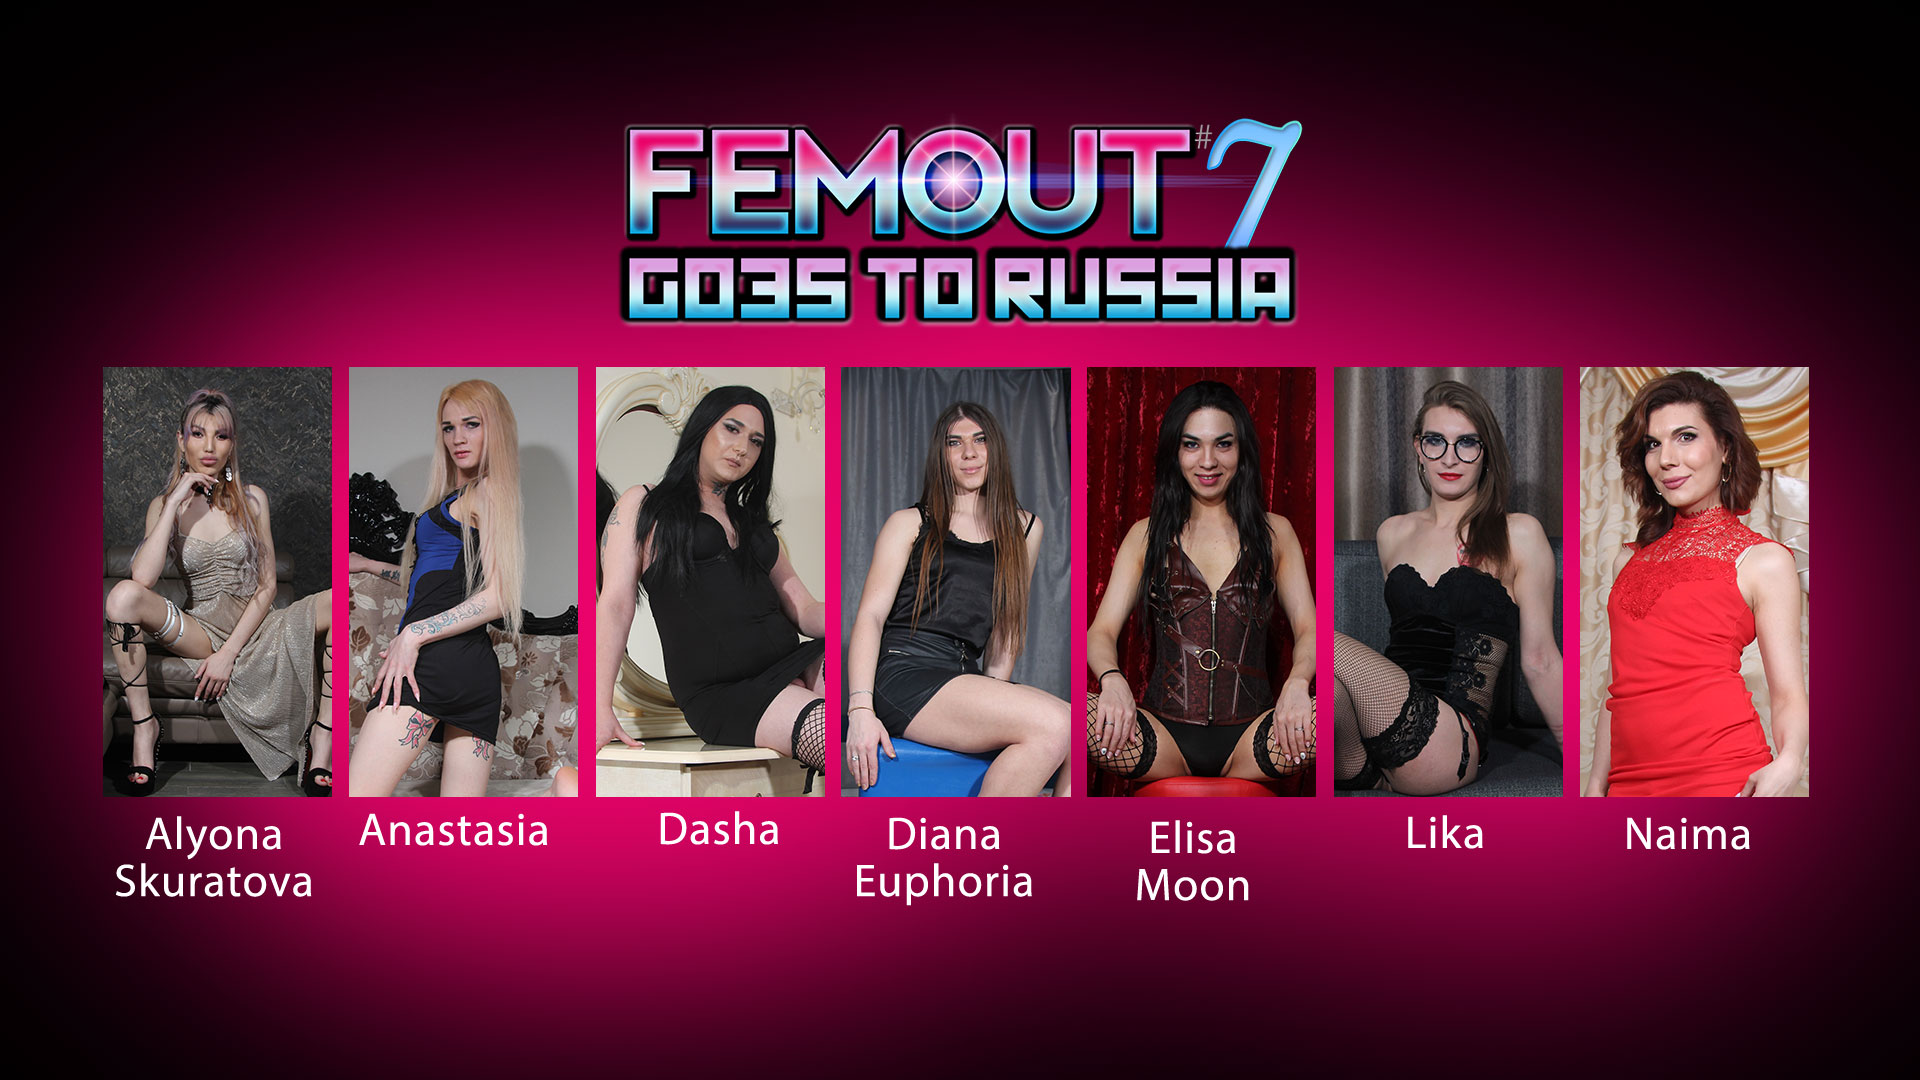 Femout #7: Goes to Russia DVD Trailer